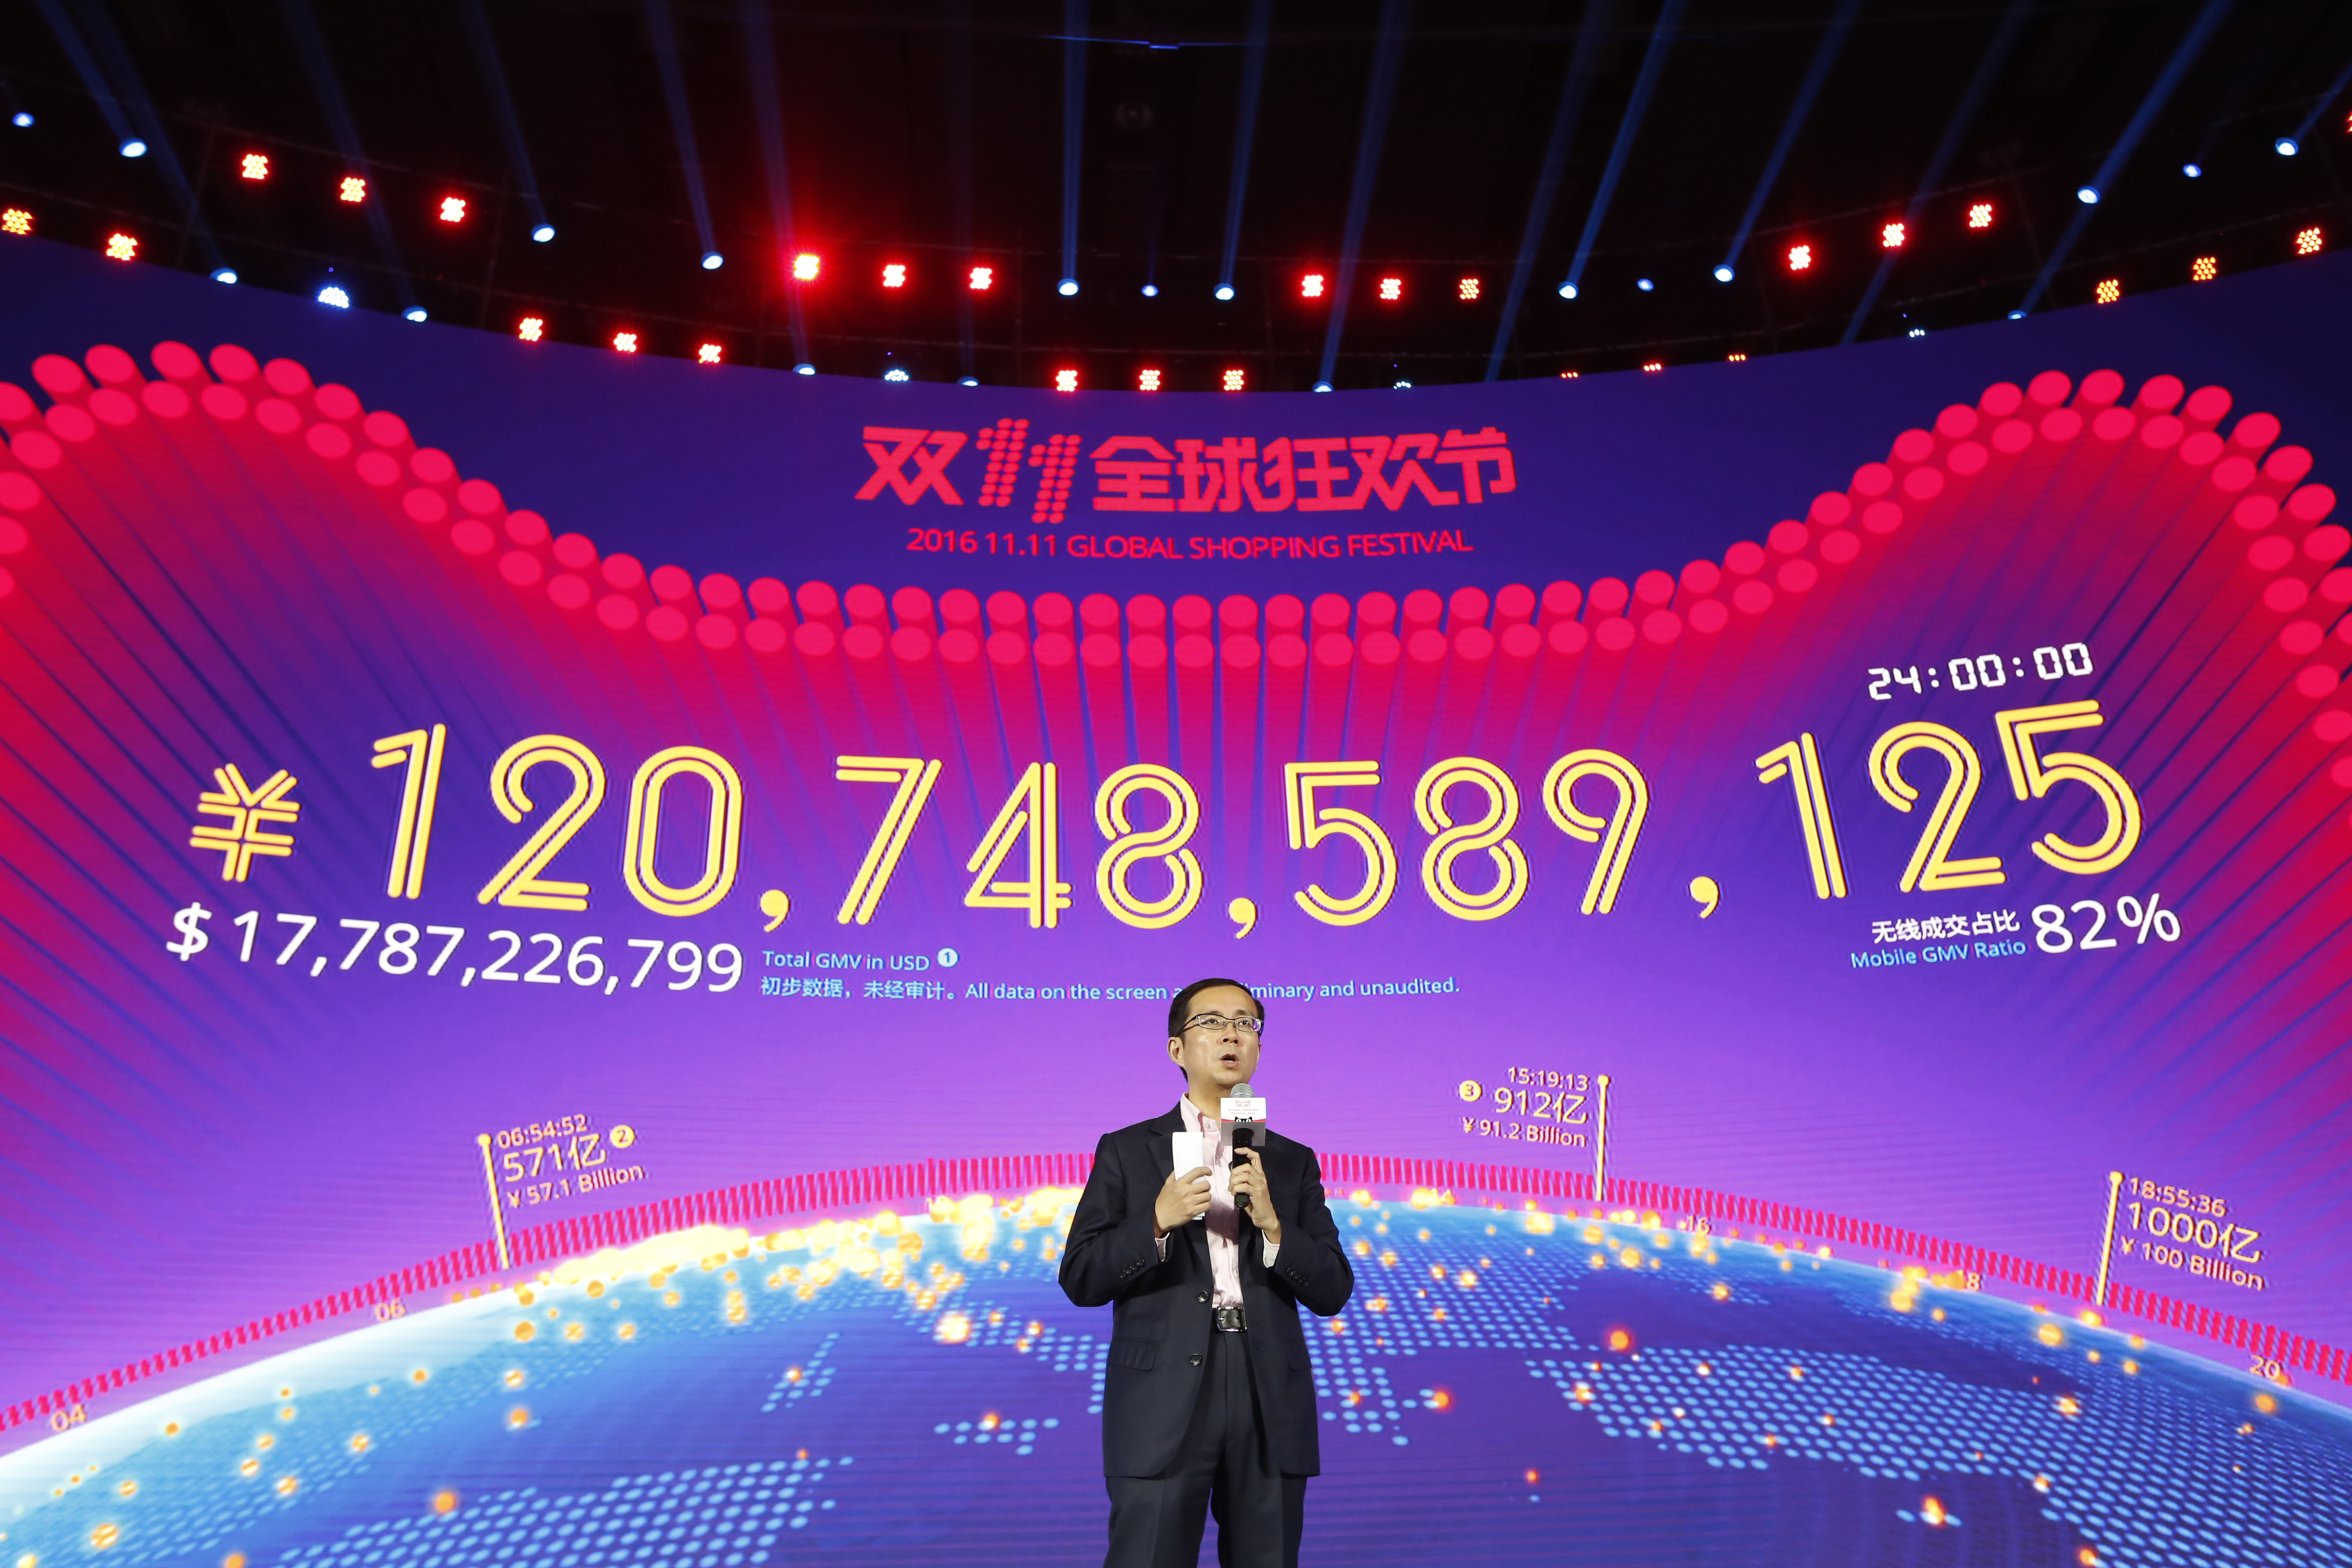 Live Updates From 2017s 1111 Global Shopping Festival Cheap Short Circuit 3 Find Deals On Line At Alibaba Nine Years Ago Was Launched As A Means Of Survival For The Fledgling Tmall Platform Then Known Taobao Mall Alizila Sat Down With